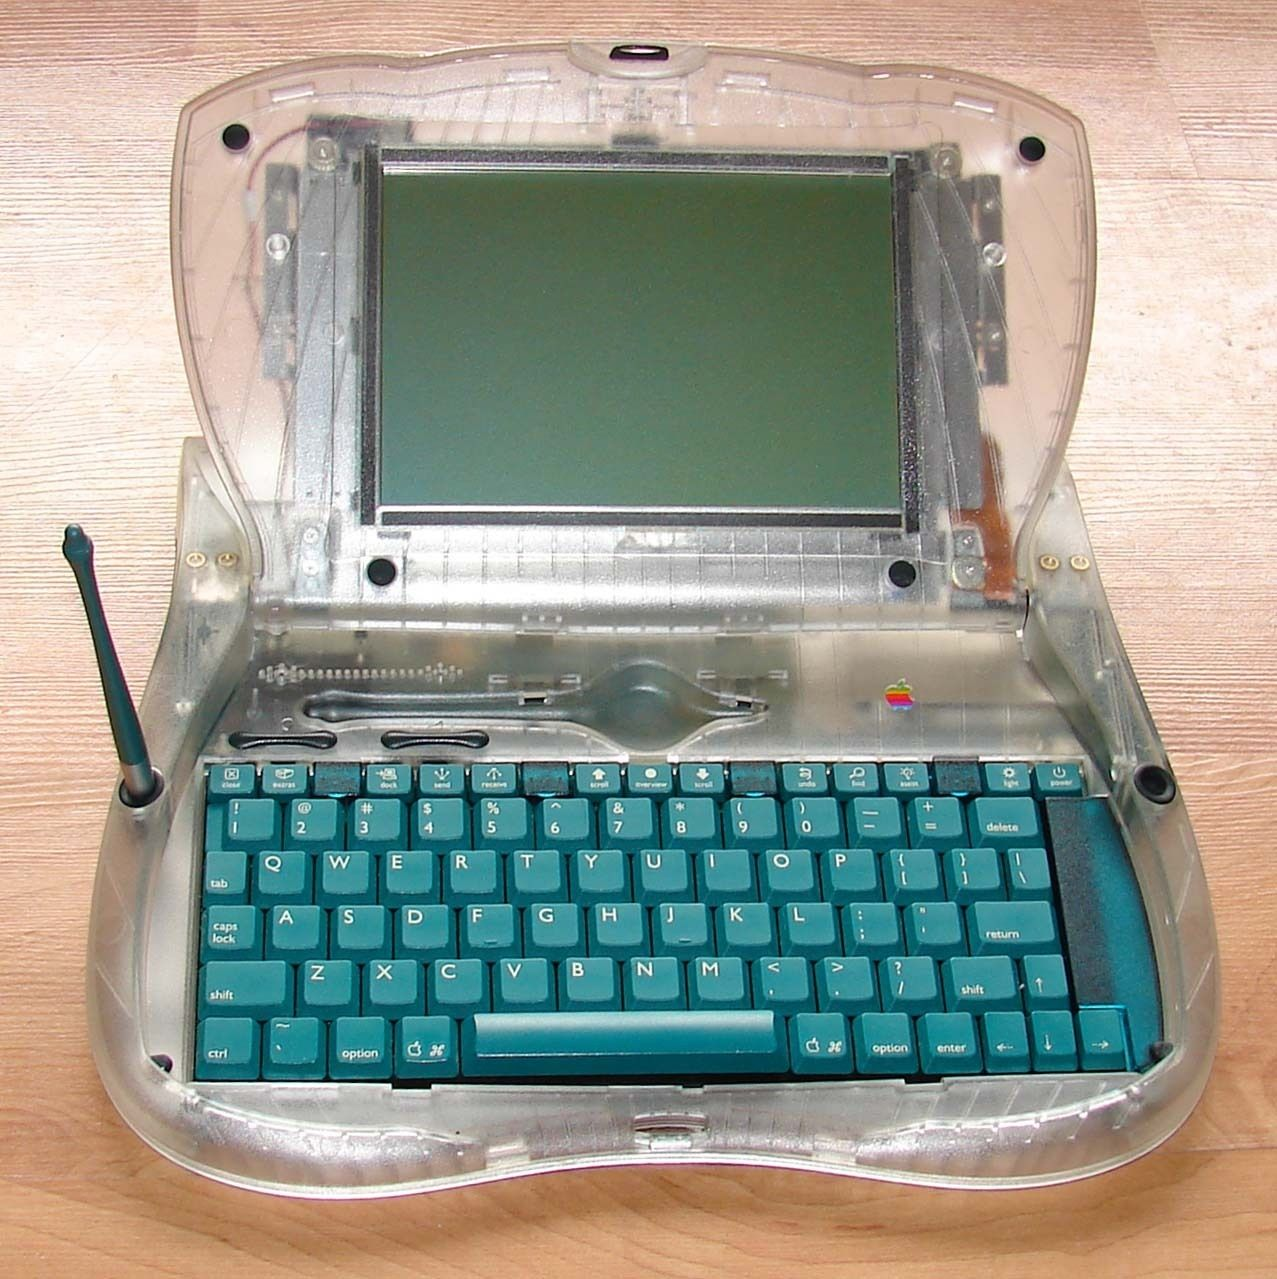 Rare Apple Vintage eMate 300 Laptop. Only 6 were made in clear as prototypes